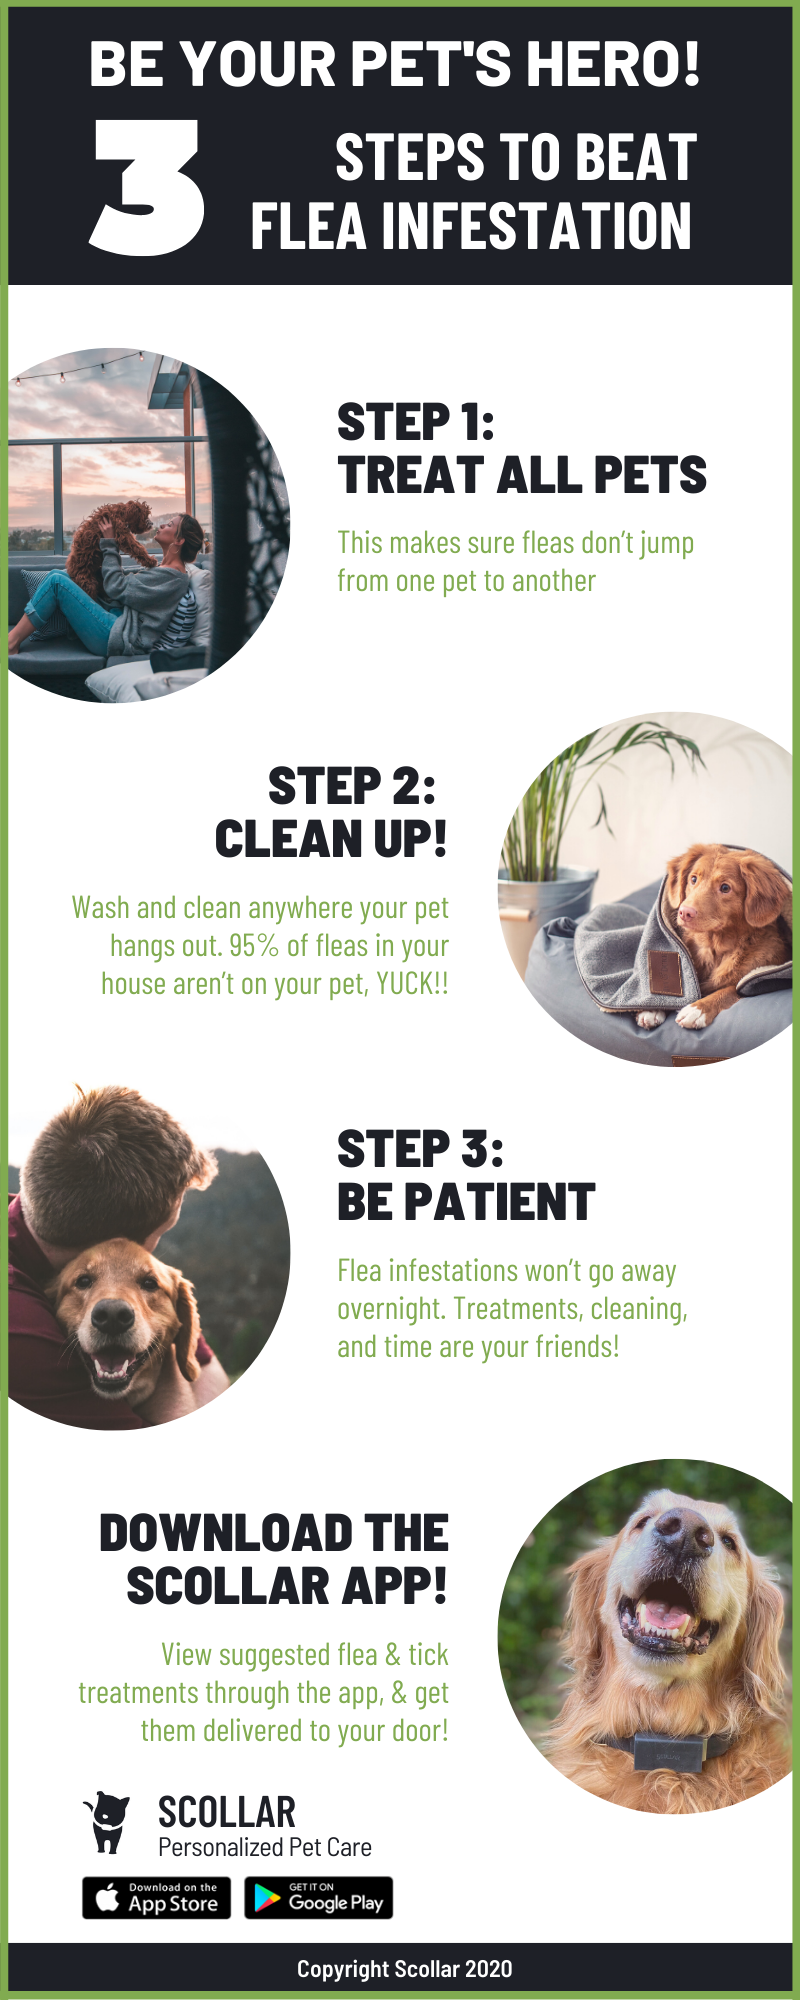 Scollar infographic of 3 steps to beat a flea infestation